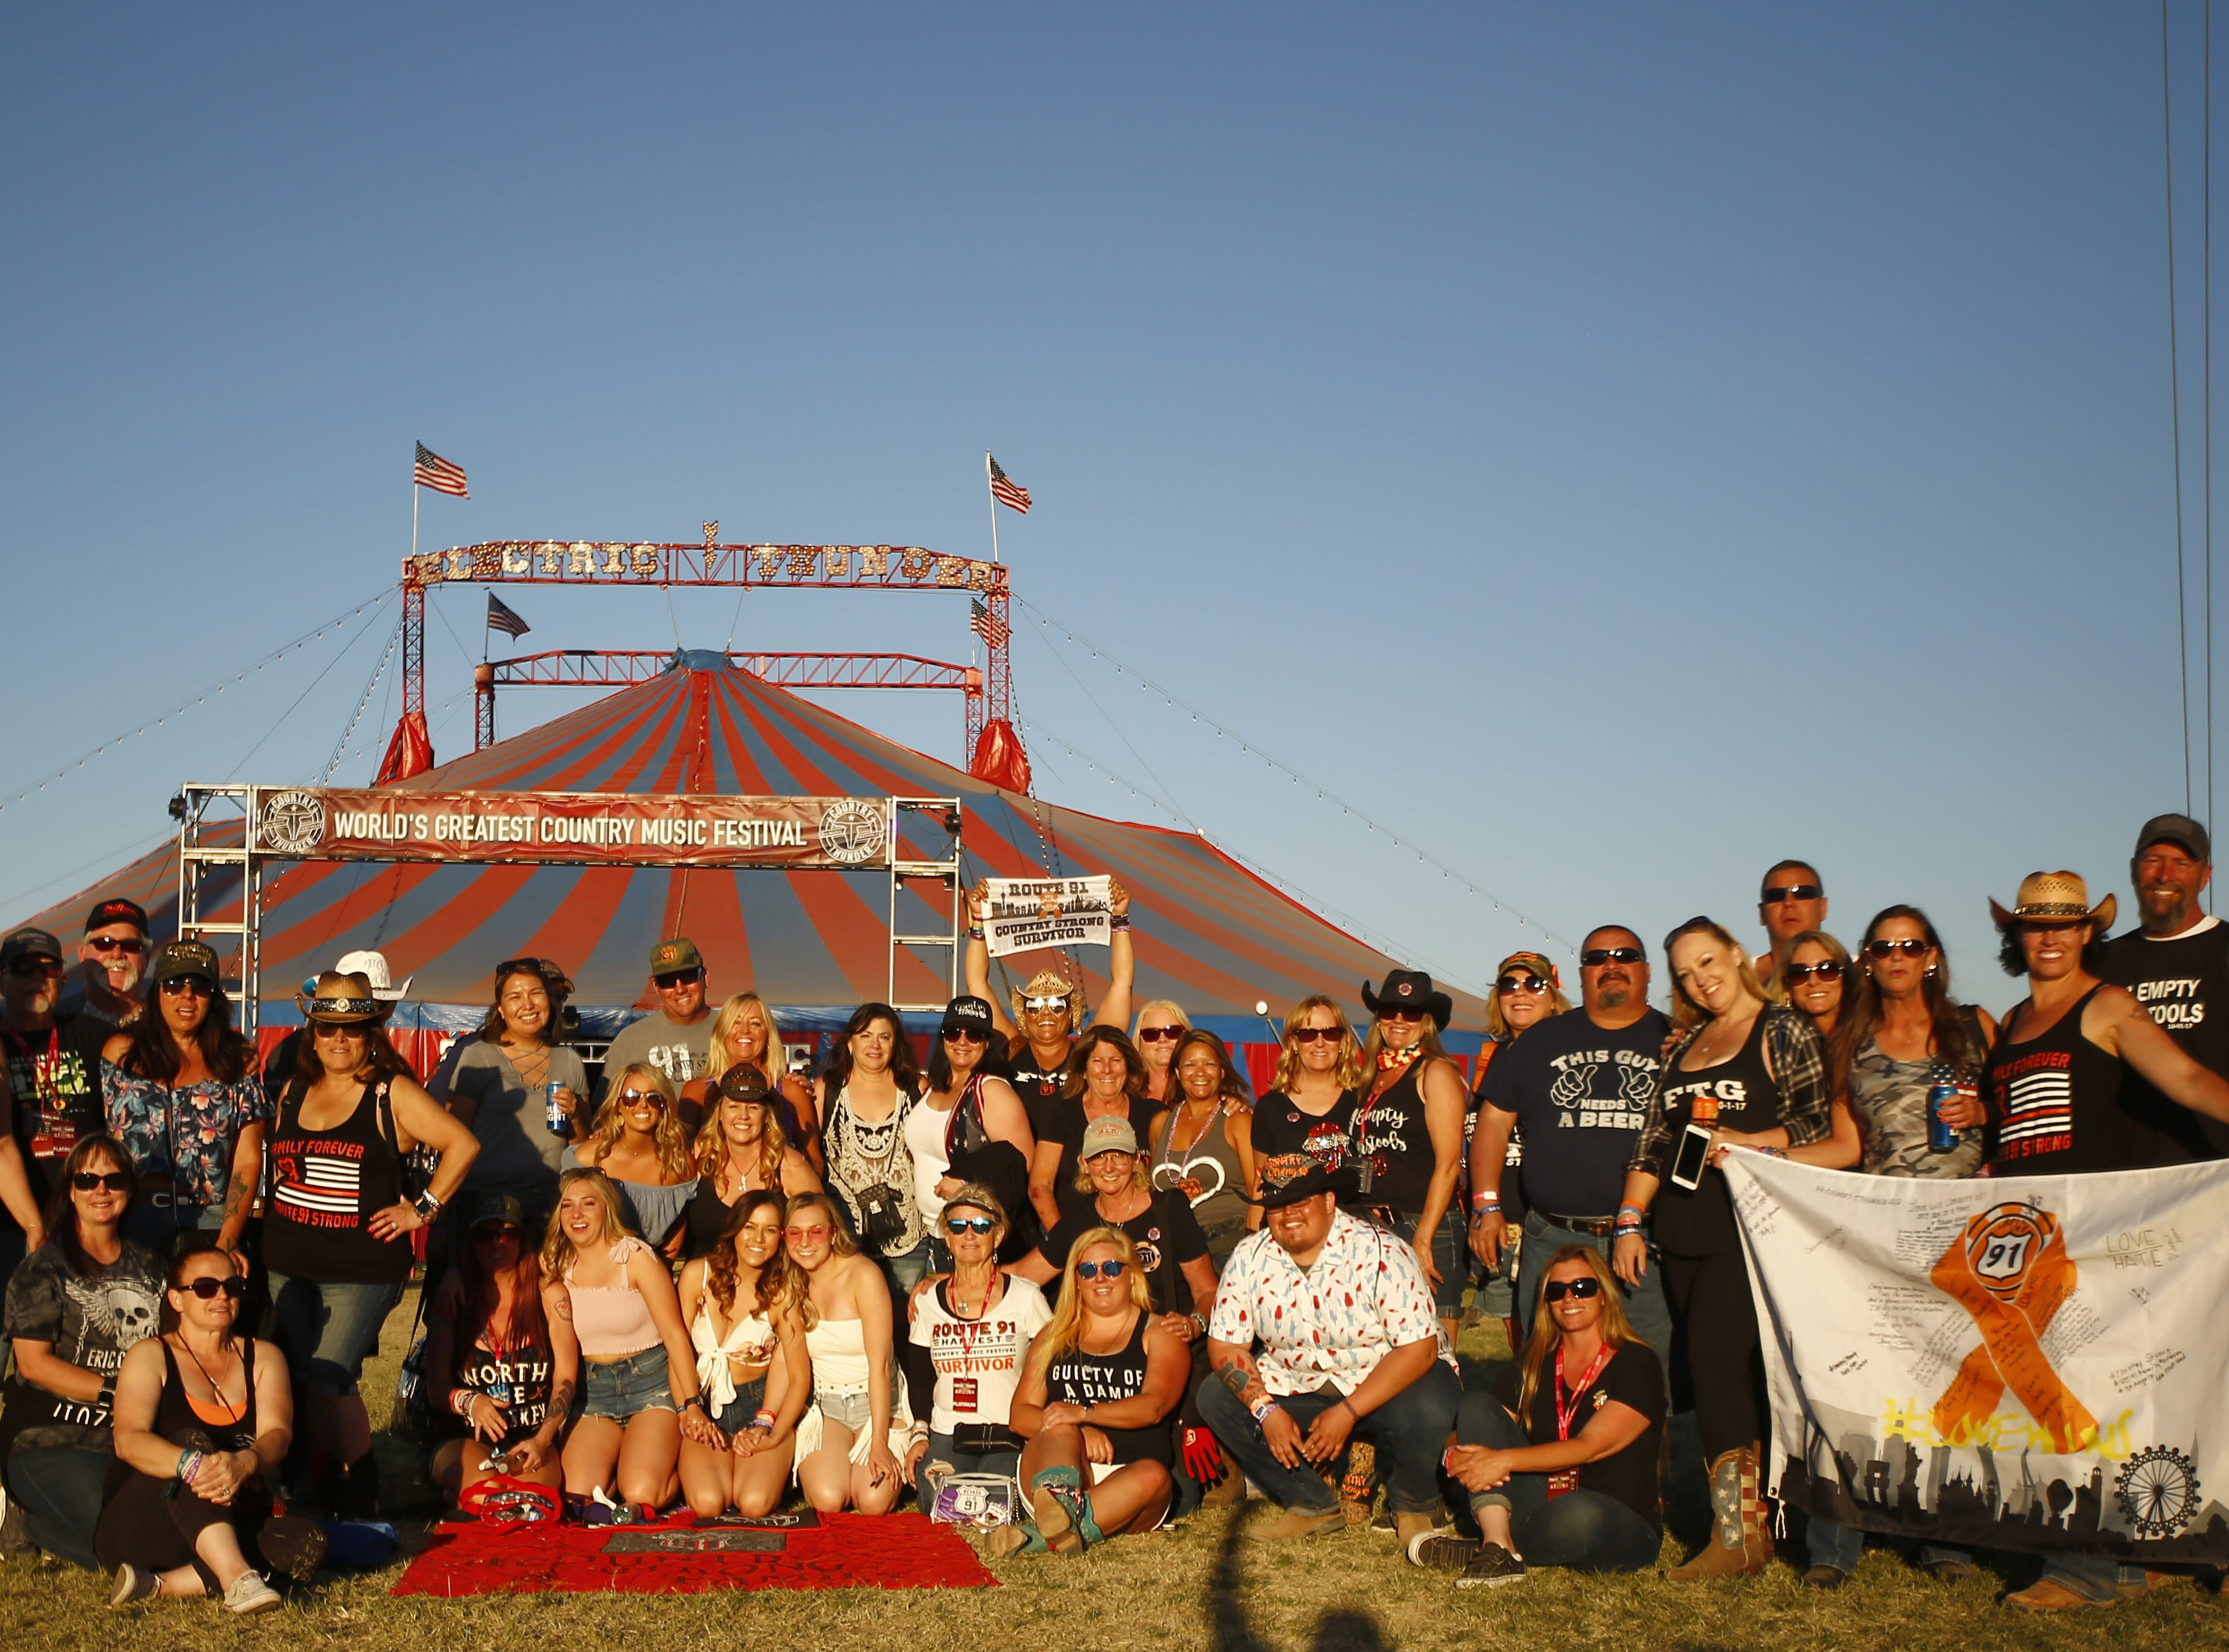 Survivors of the Route 91 Harvest Festival shooting in Las Vegas gather around for pictures during Country Thunder in Florence, Arizona, on April 13, 2019.